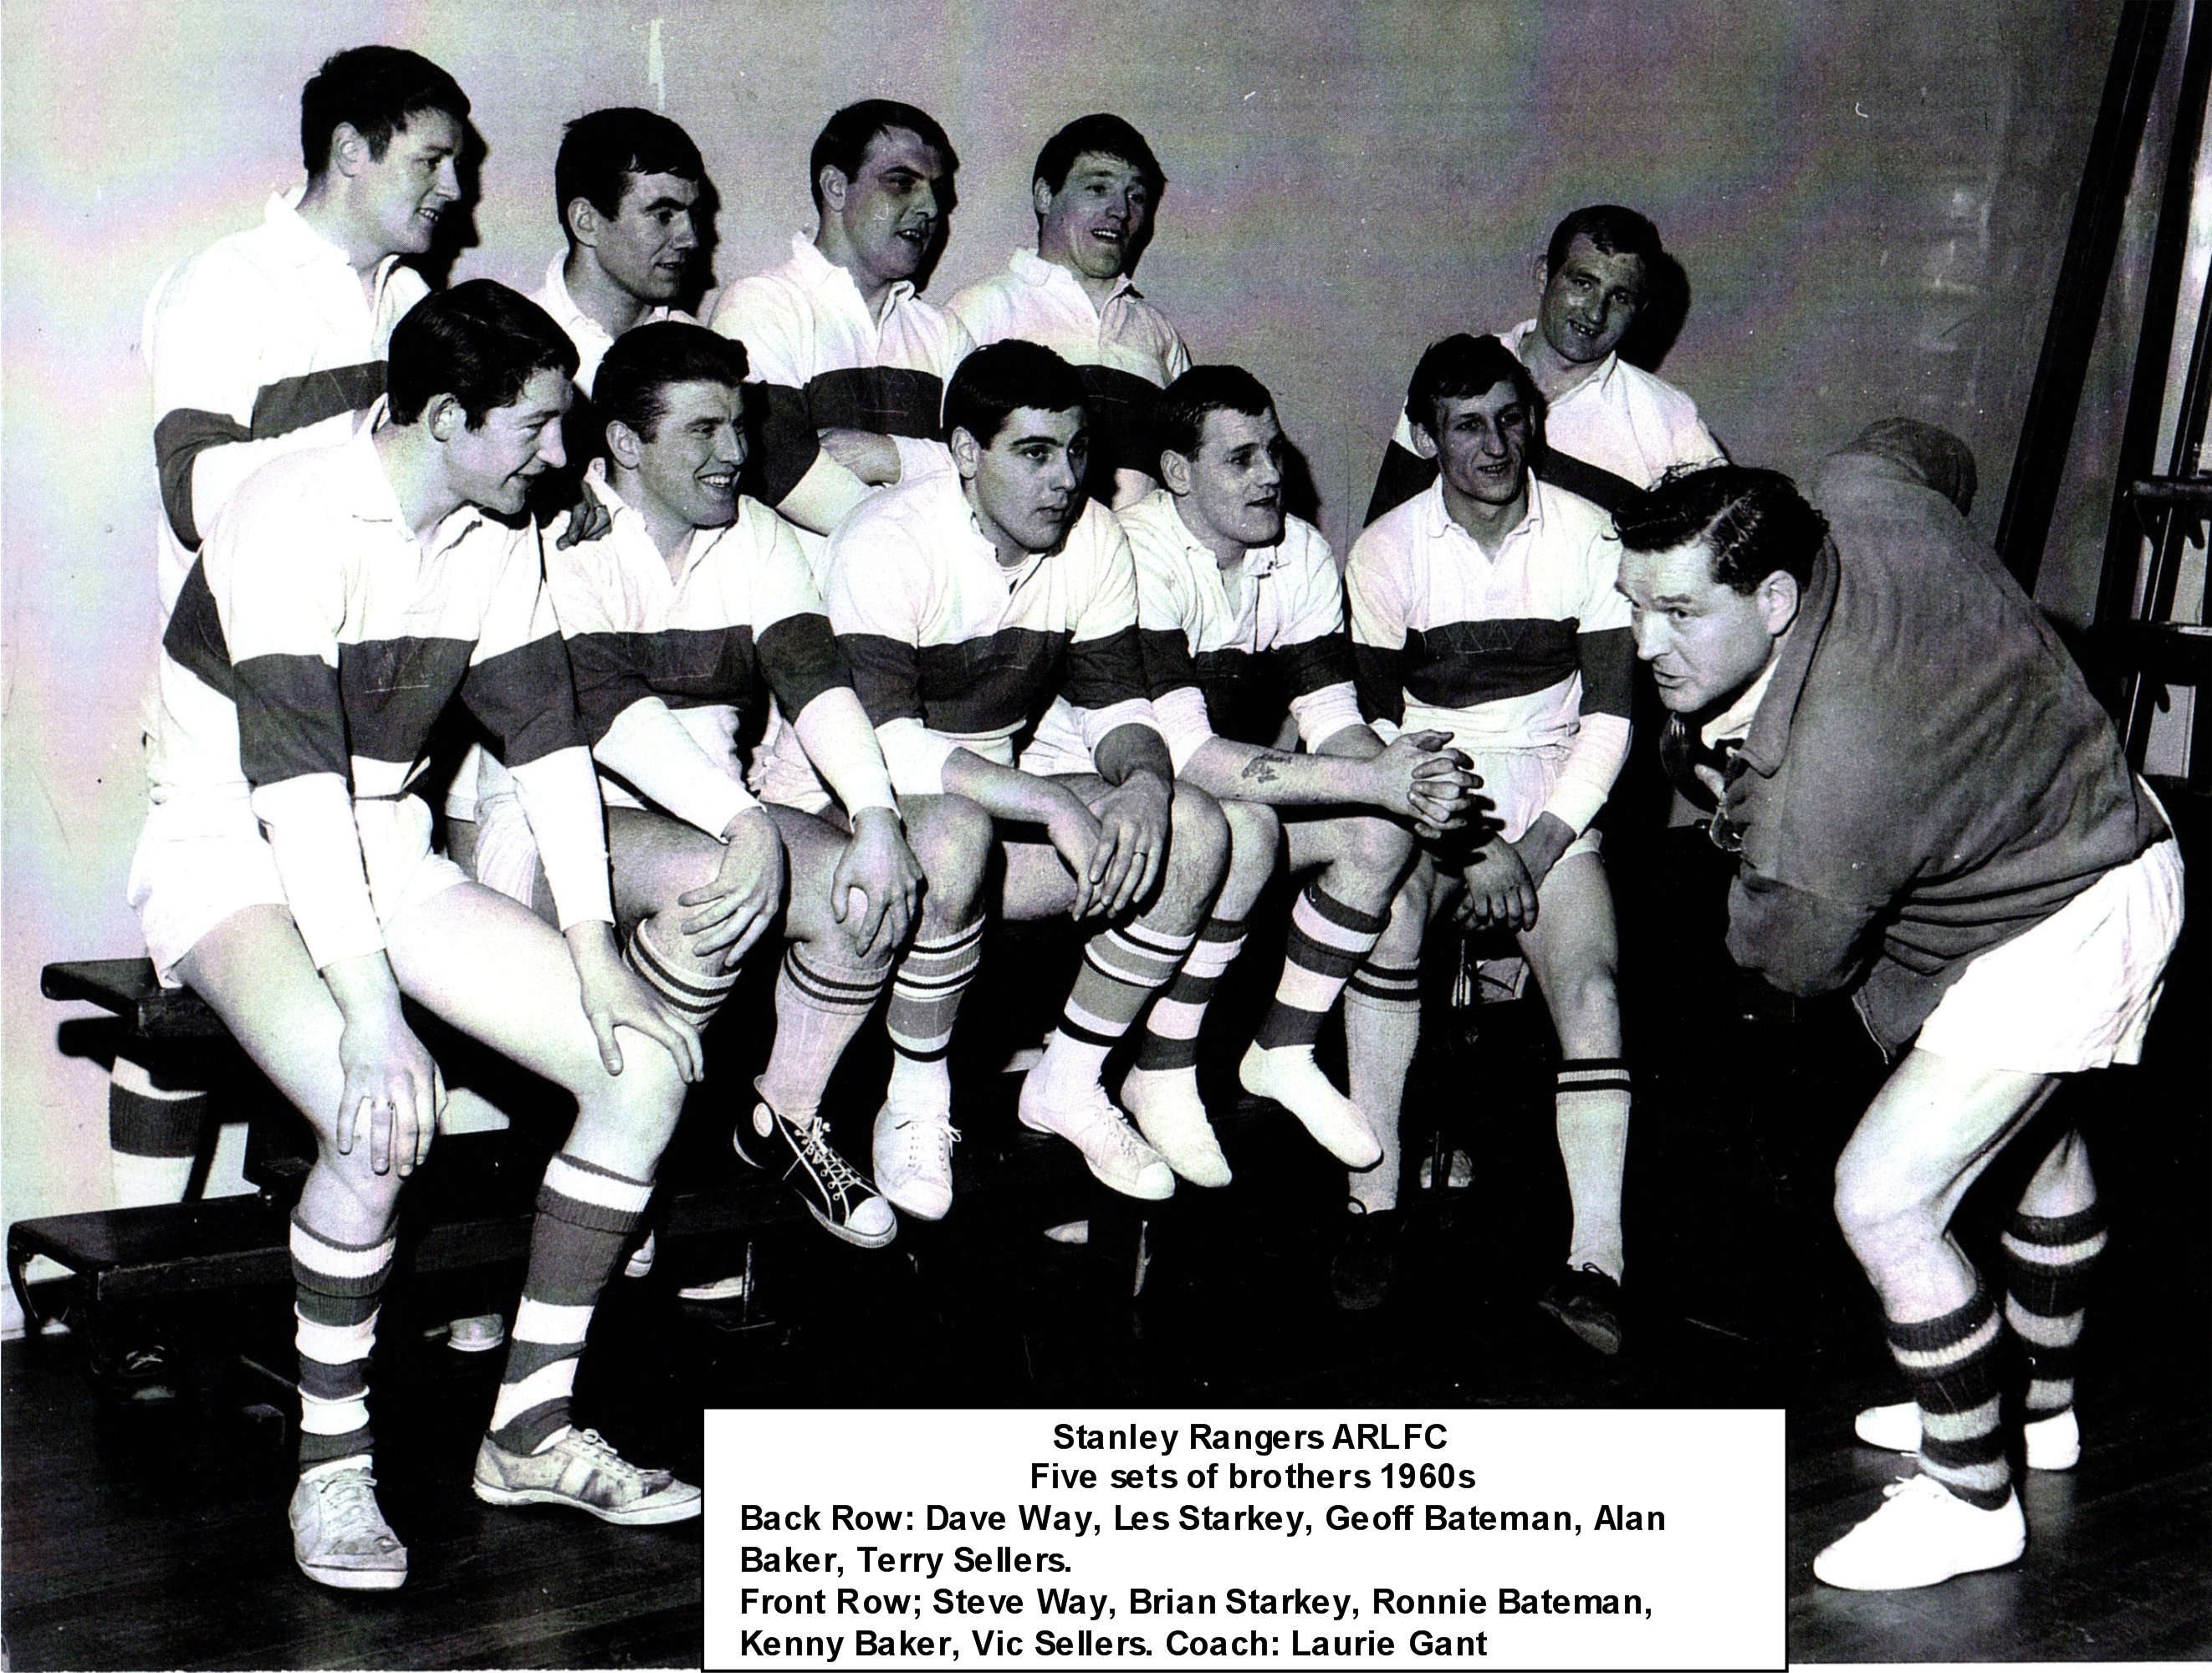 Brothers playing for Stanley Rangers 1960s